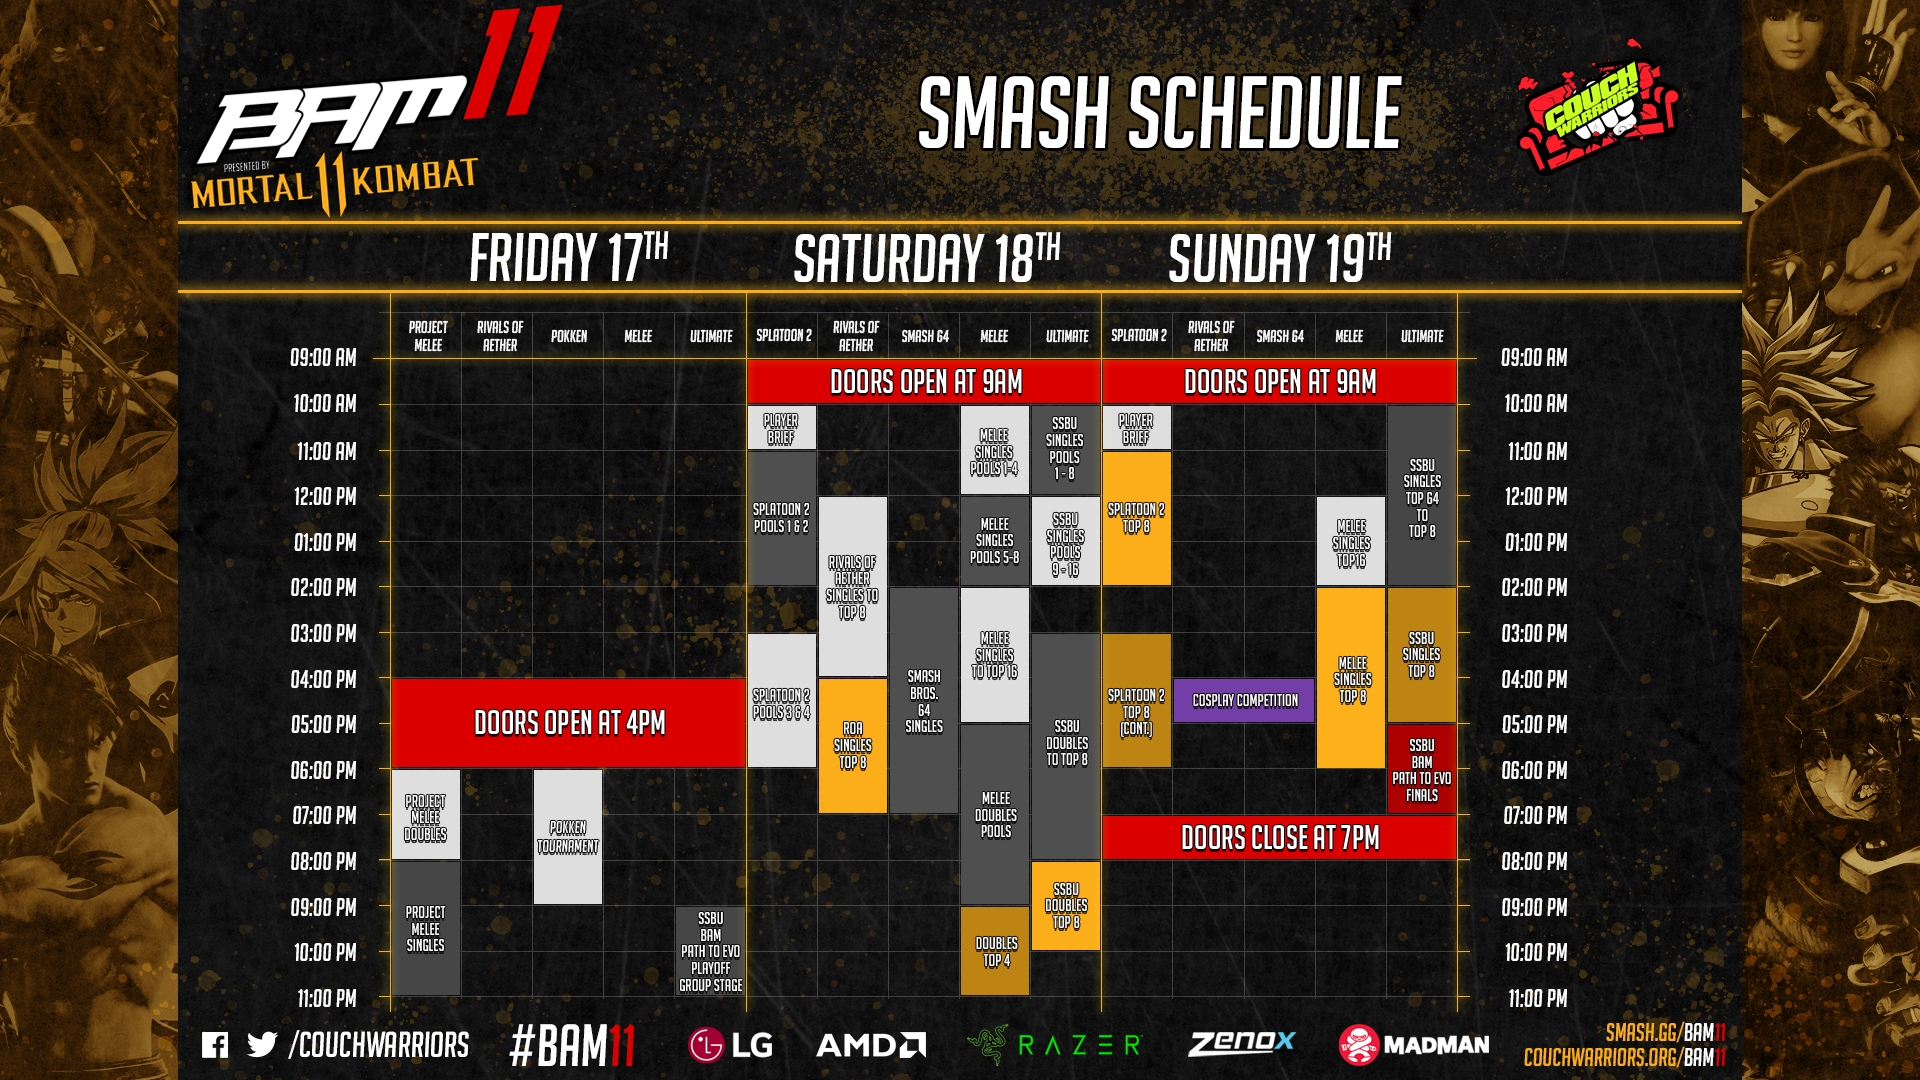 BAM 11 Event Schedule 1 out of 2 image gallery